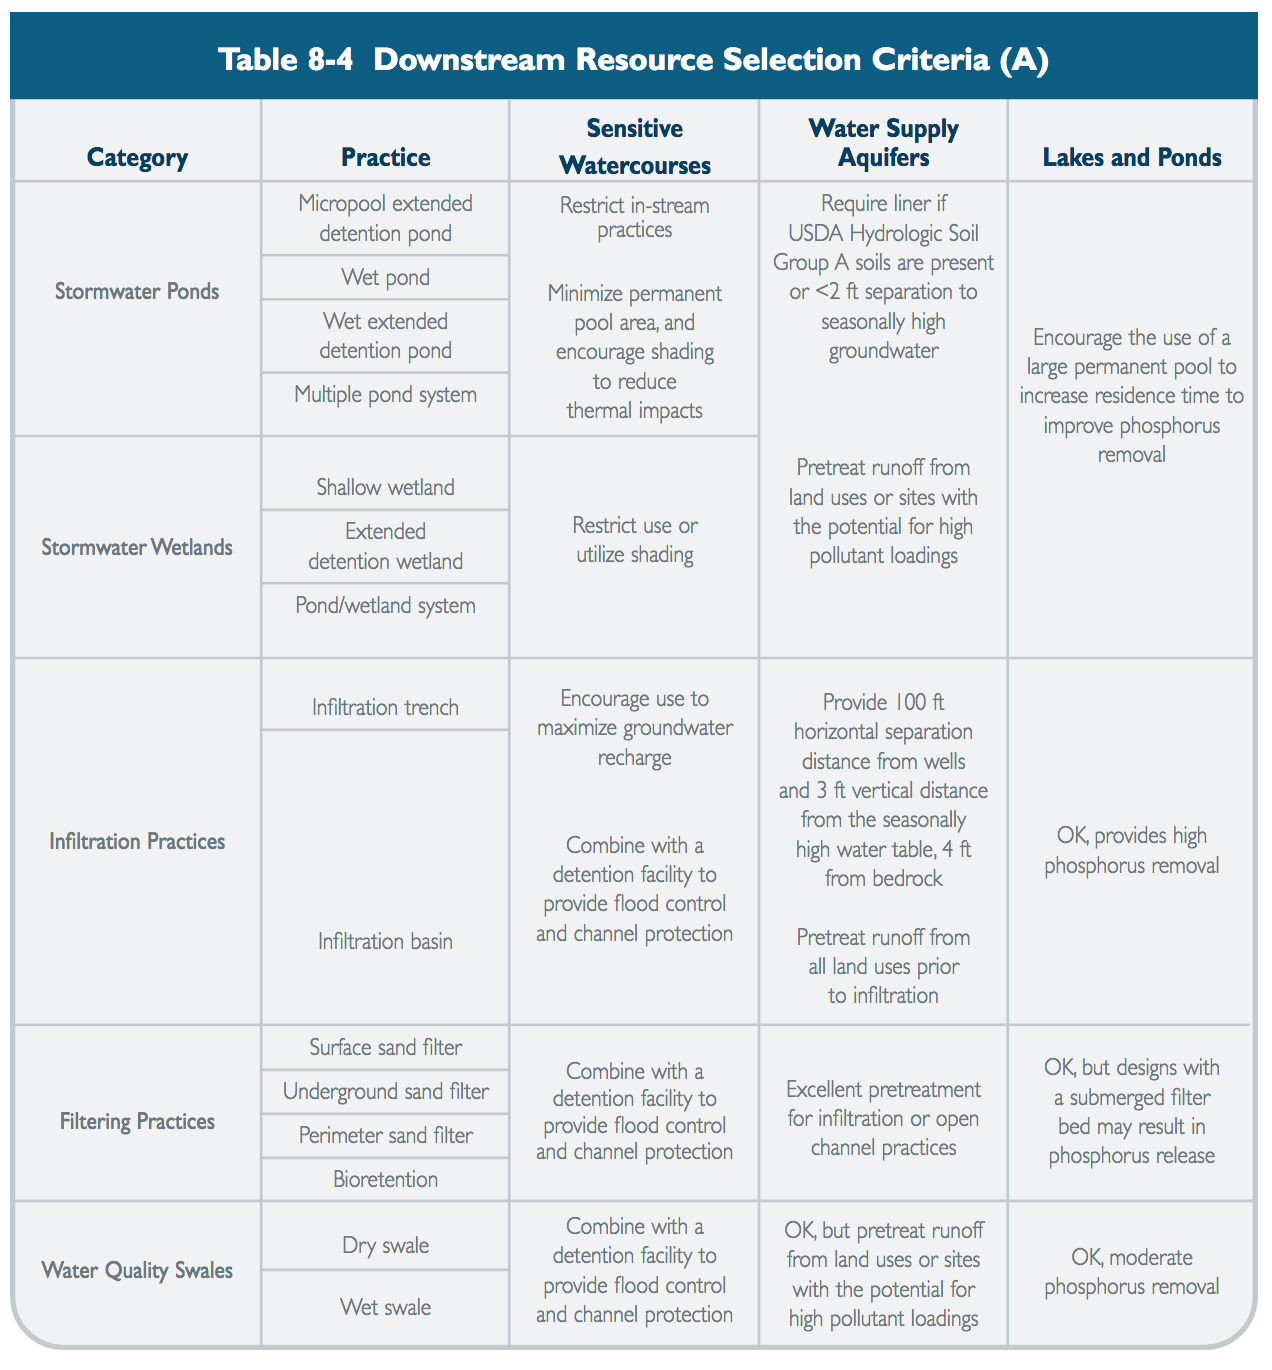 Table 8-4 Downstream Resource Selection Criteria